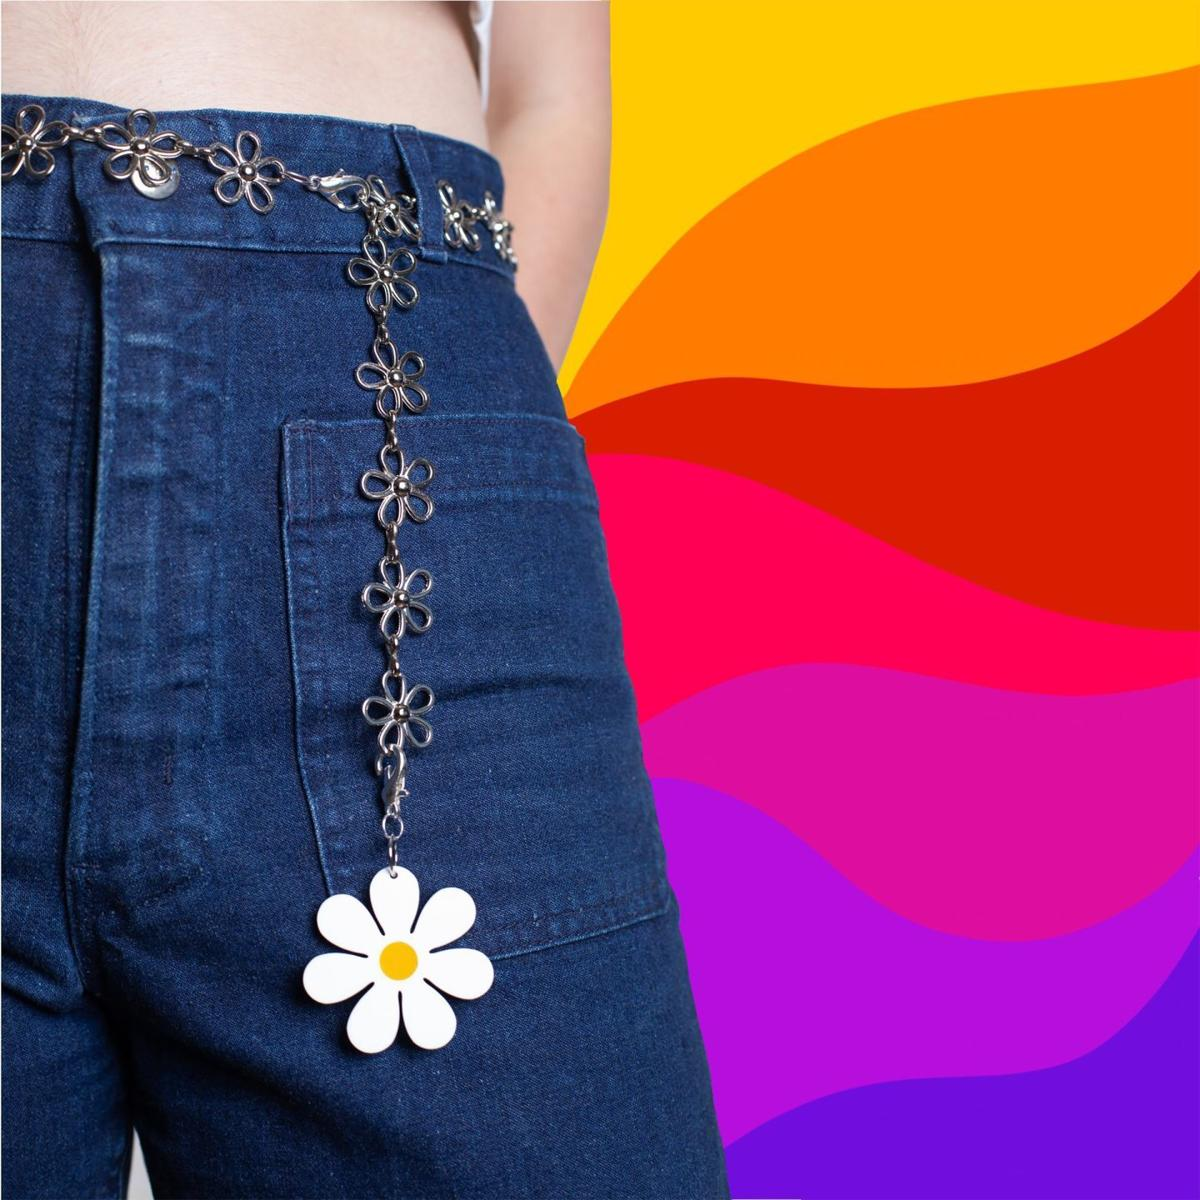 Daisy Chain Belt with White Daisy charm